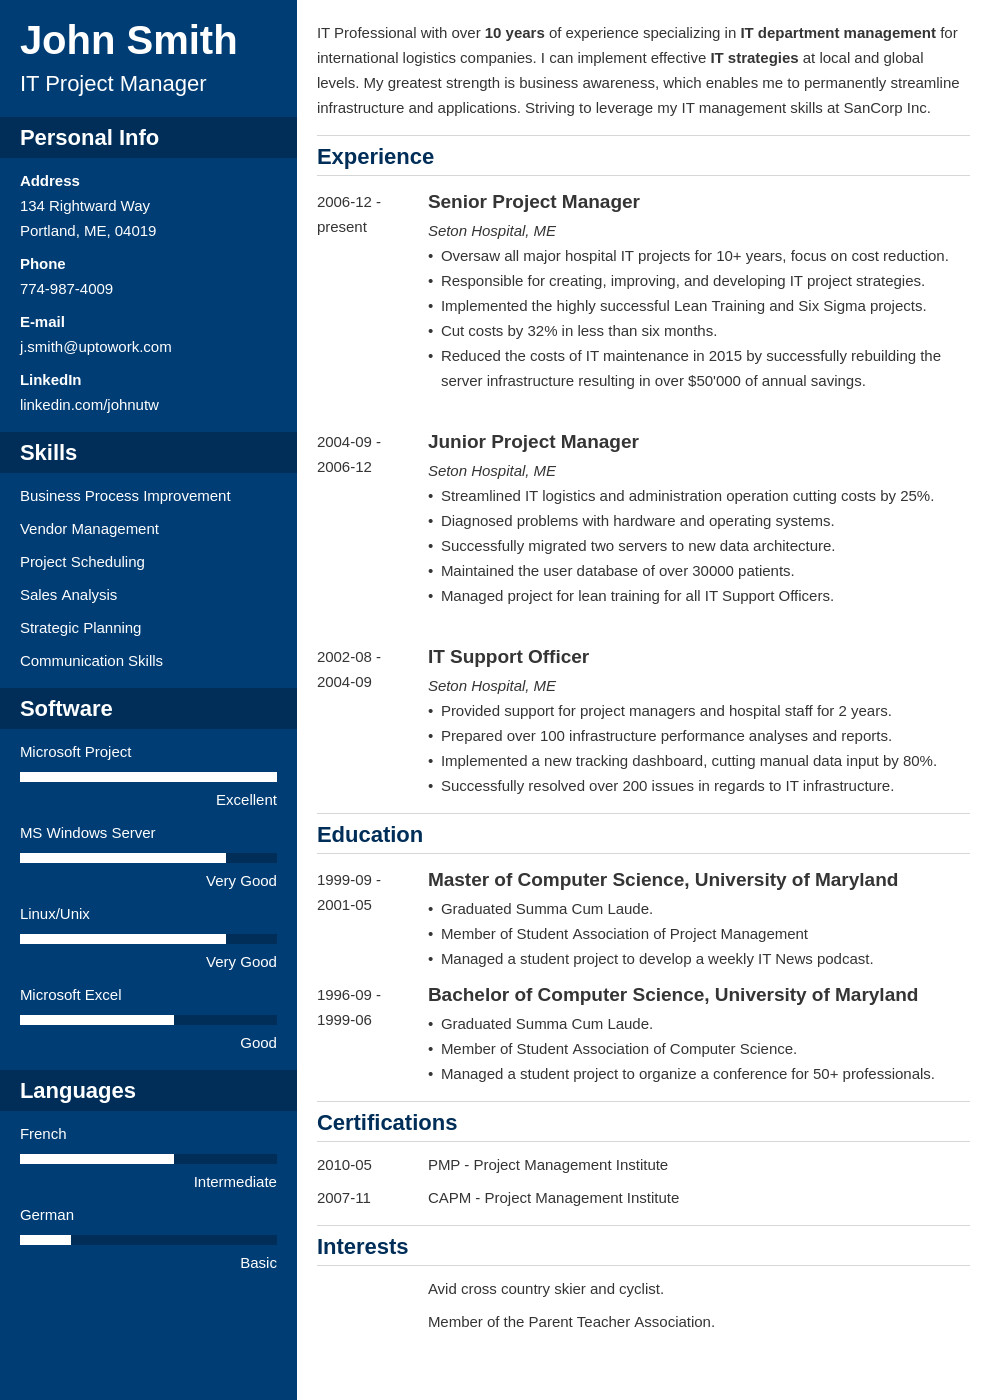 Download Free Resume Template 20 Resume Templates [download] Create Your Resume In 5